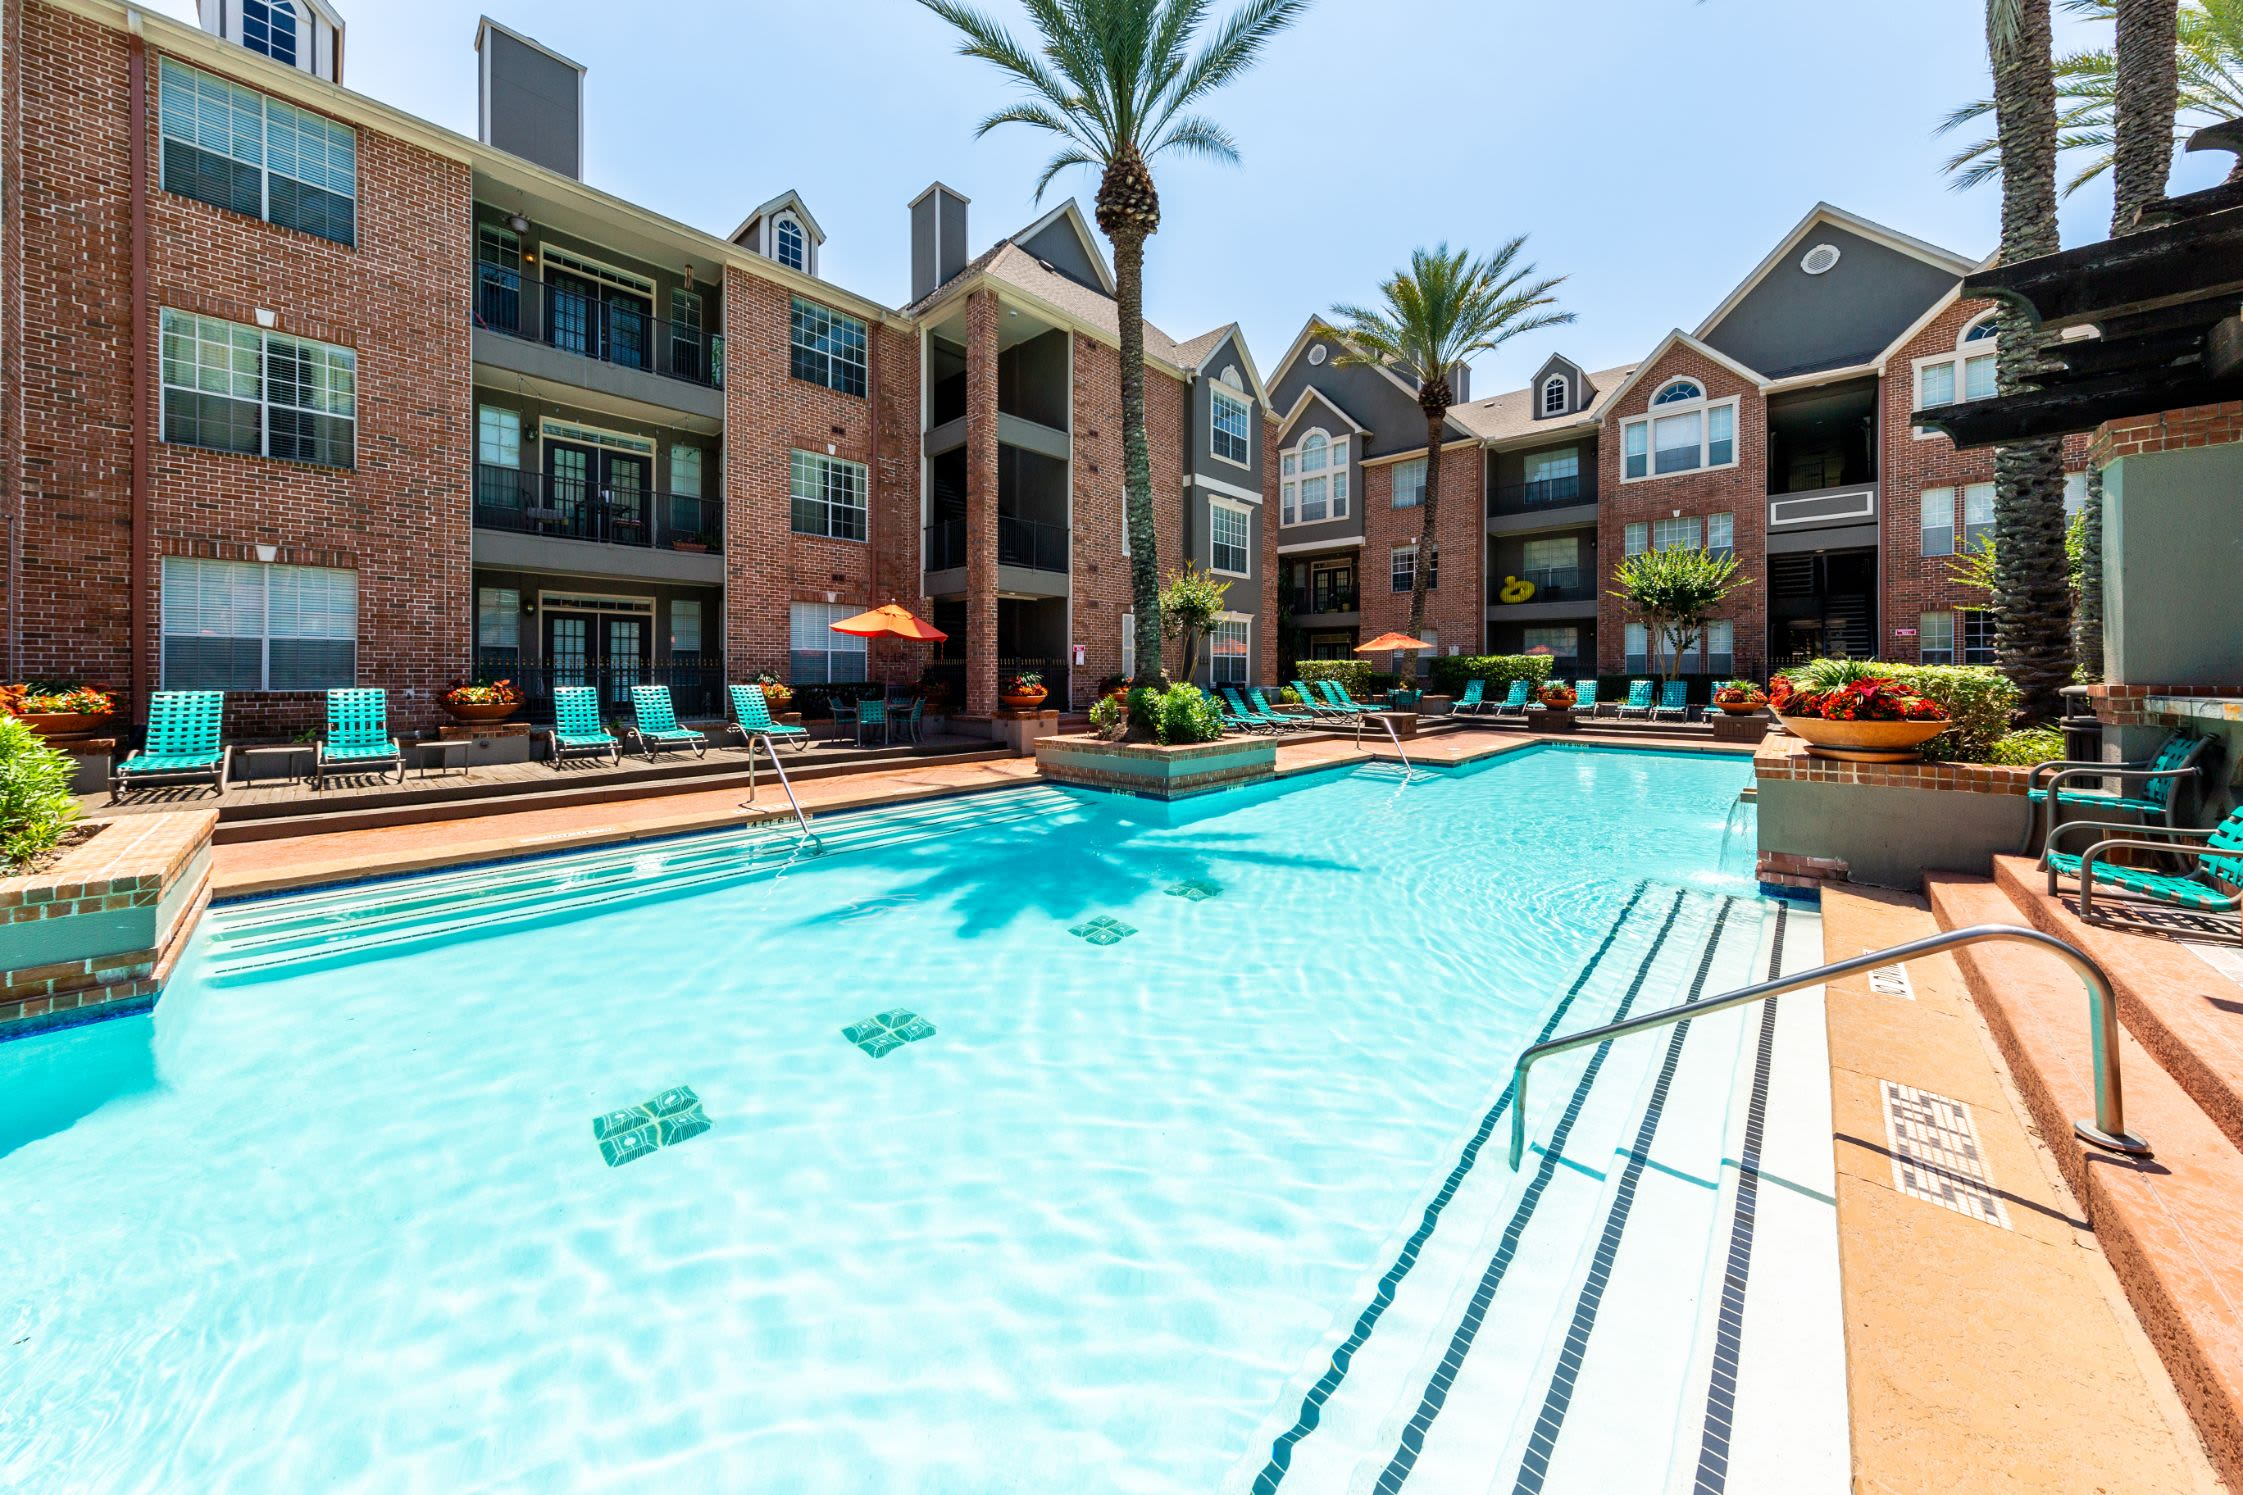 Sparkling pool with lounge chairs on deck at Marquis on Pin Oak in Houston, Texas